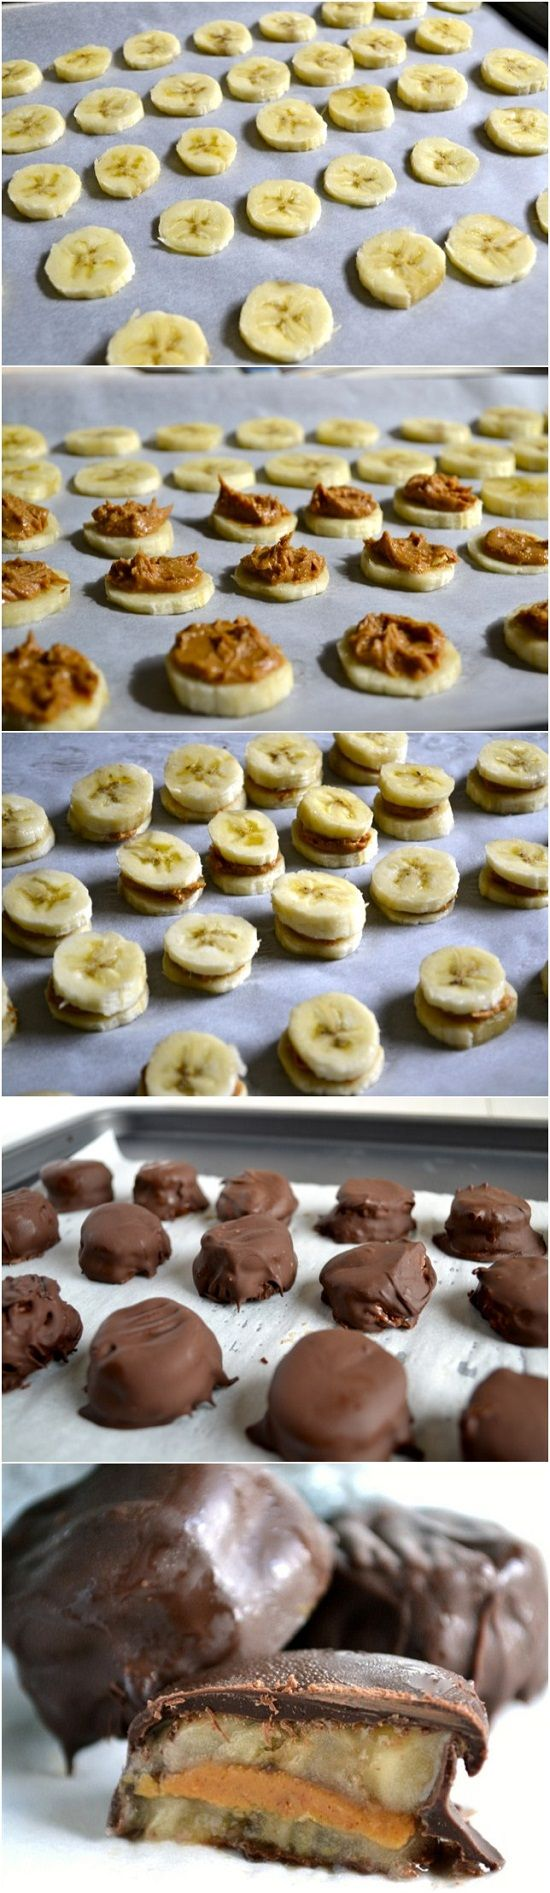 Frozen chocolate peanut butter banana bites